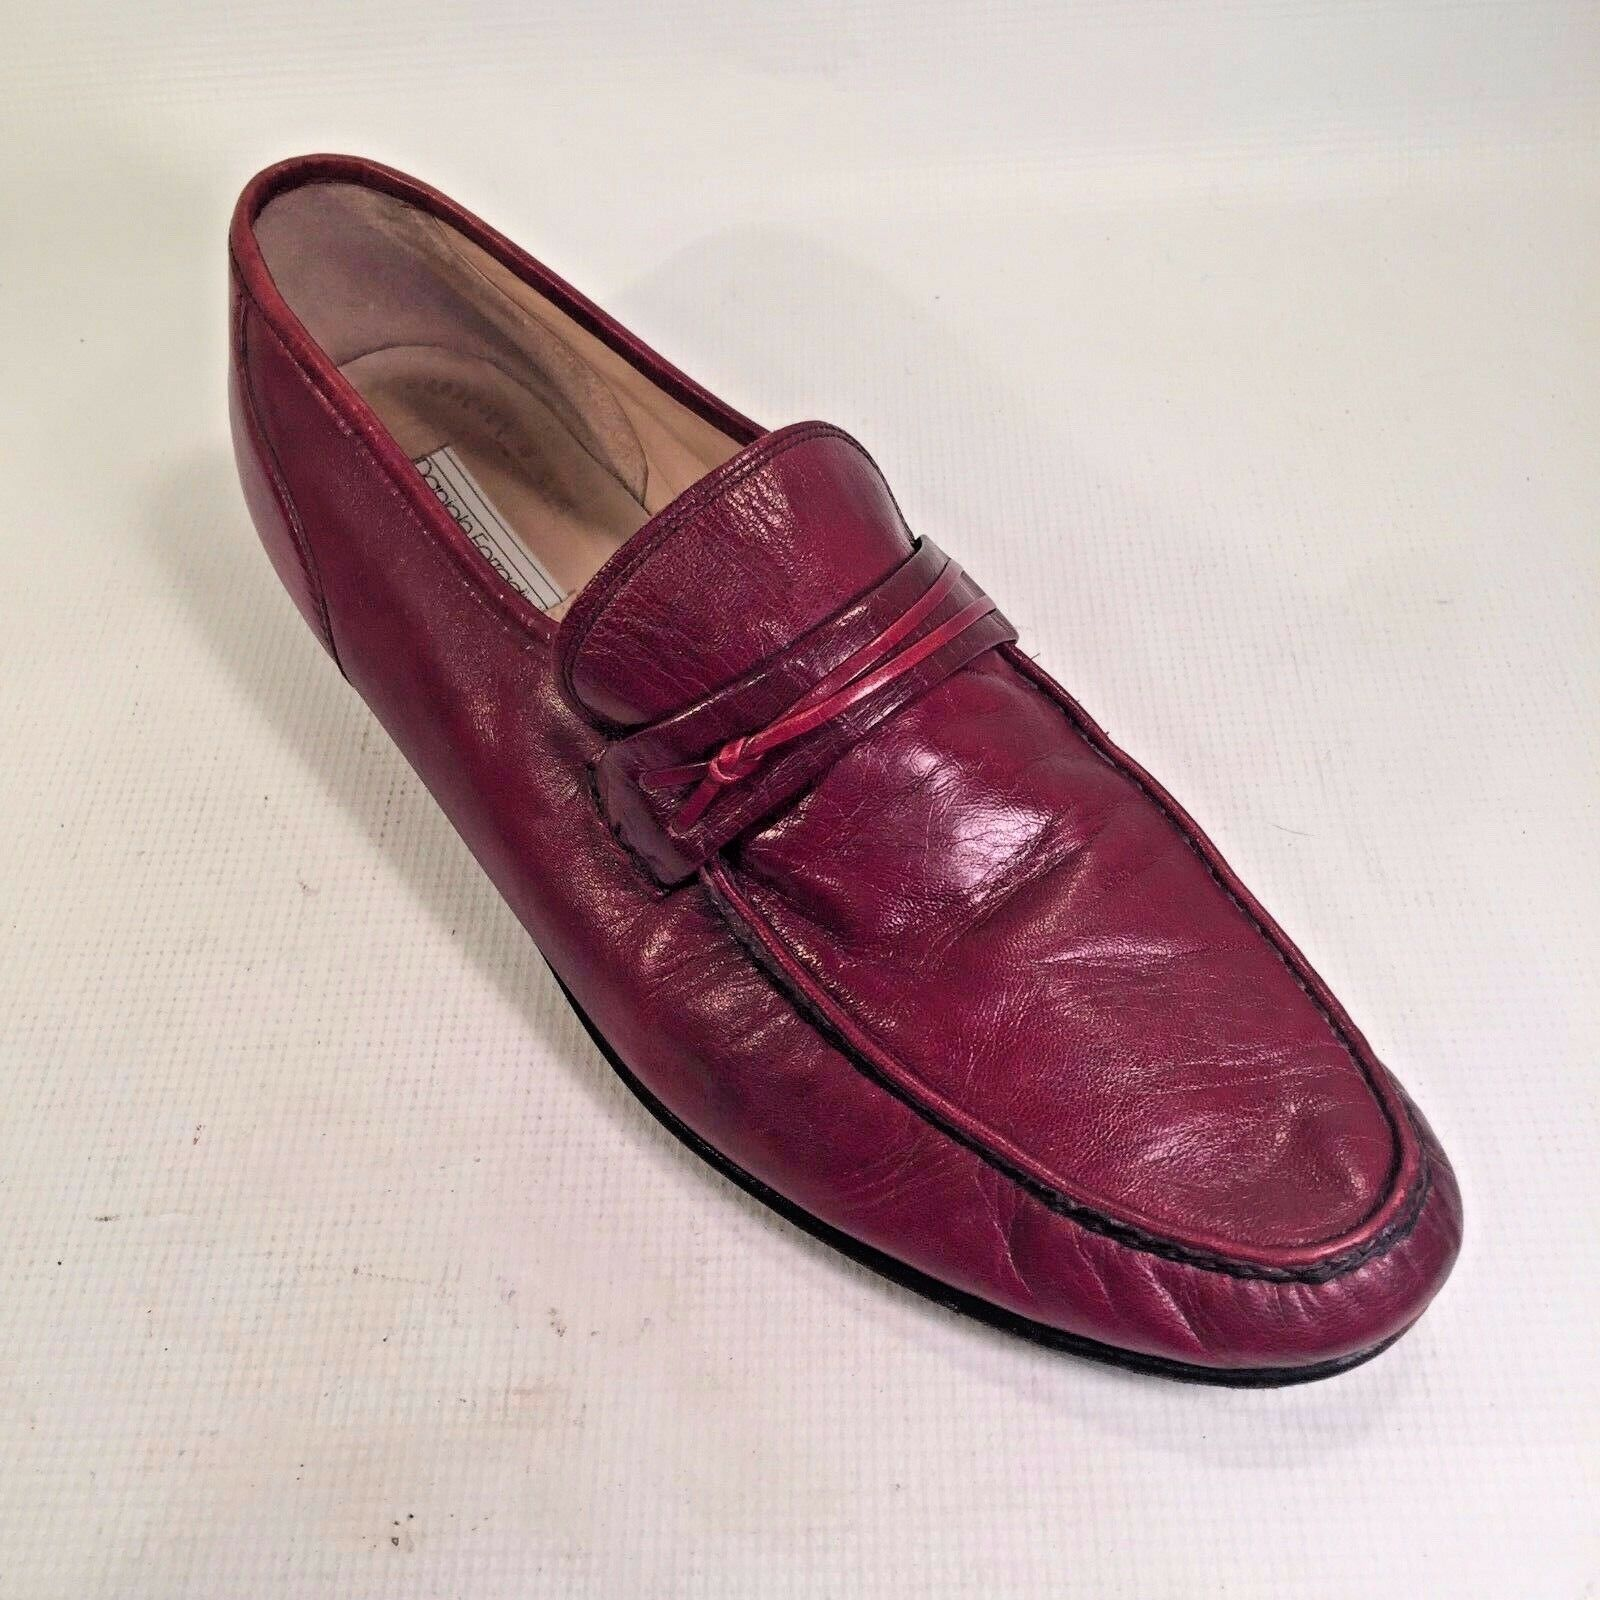 Daniele FERRIDINI ITALY Men's Slip On Casual Career Loafers LEATHER Soles 15 M